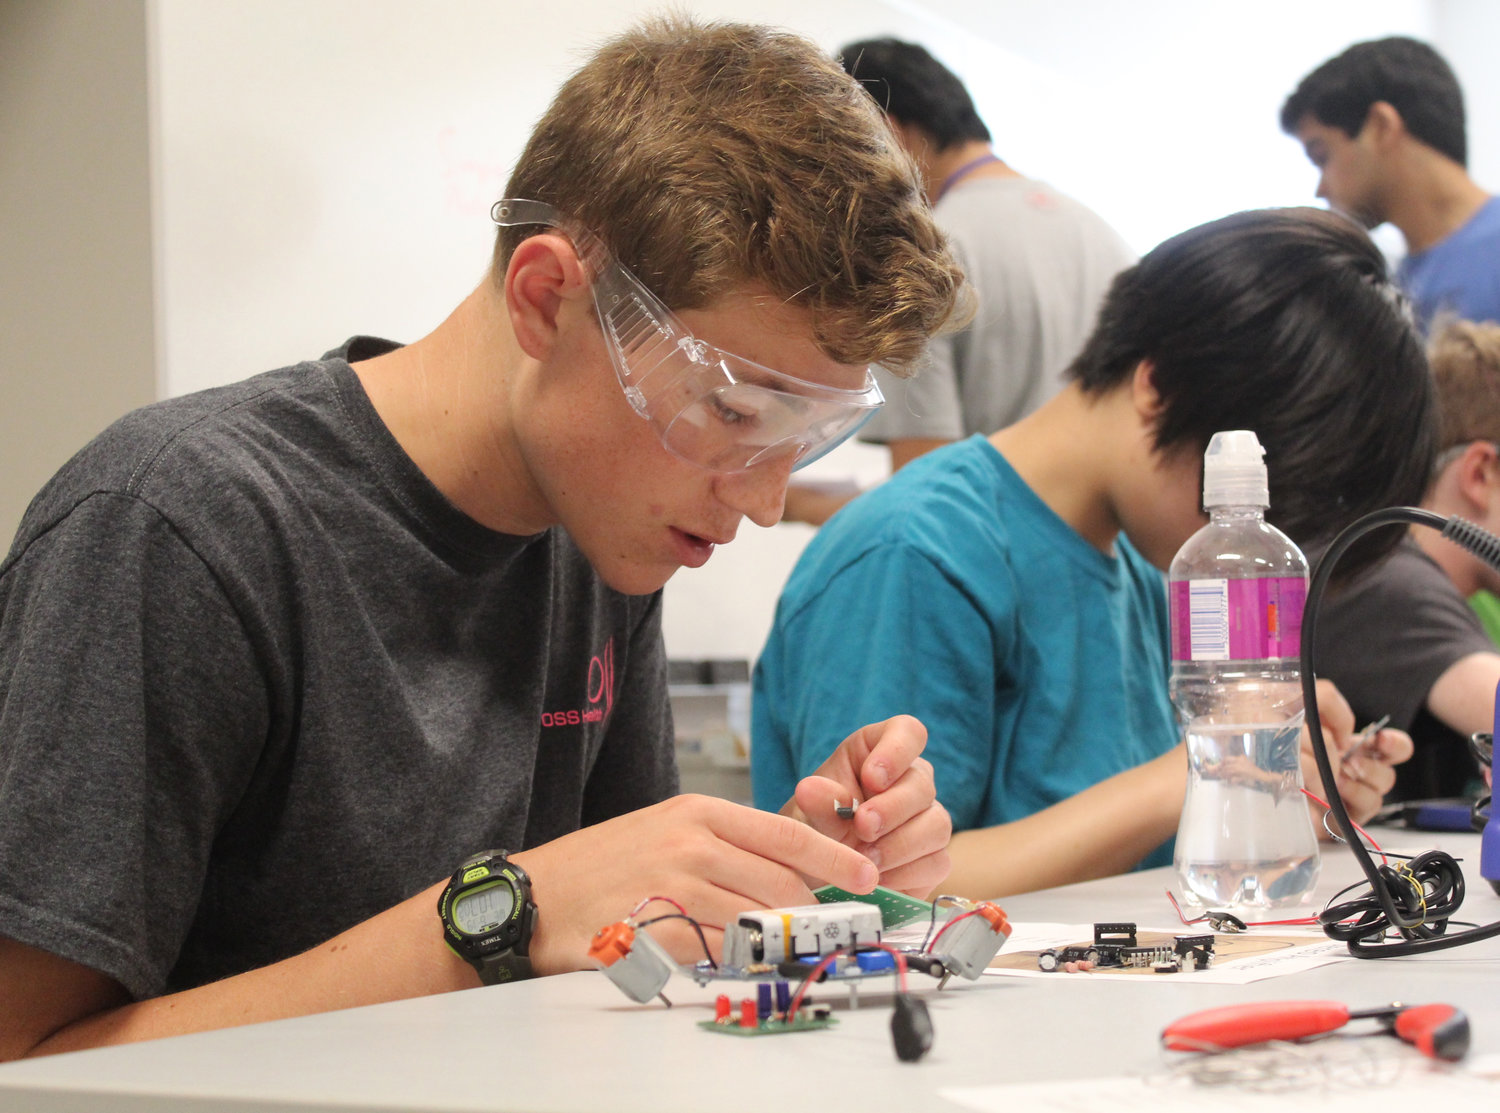 Cumberland Valley High School's Max Miller works on a circuit board during the electrical engineering lab during Penn State Harrisburg's STEM Summer Enrichment Program on June 19.